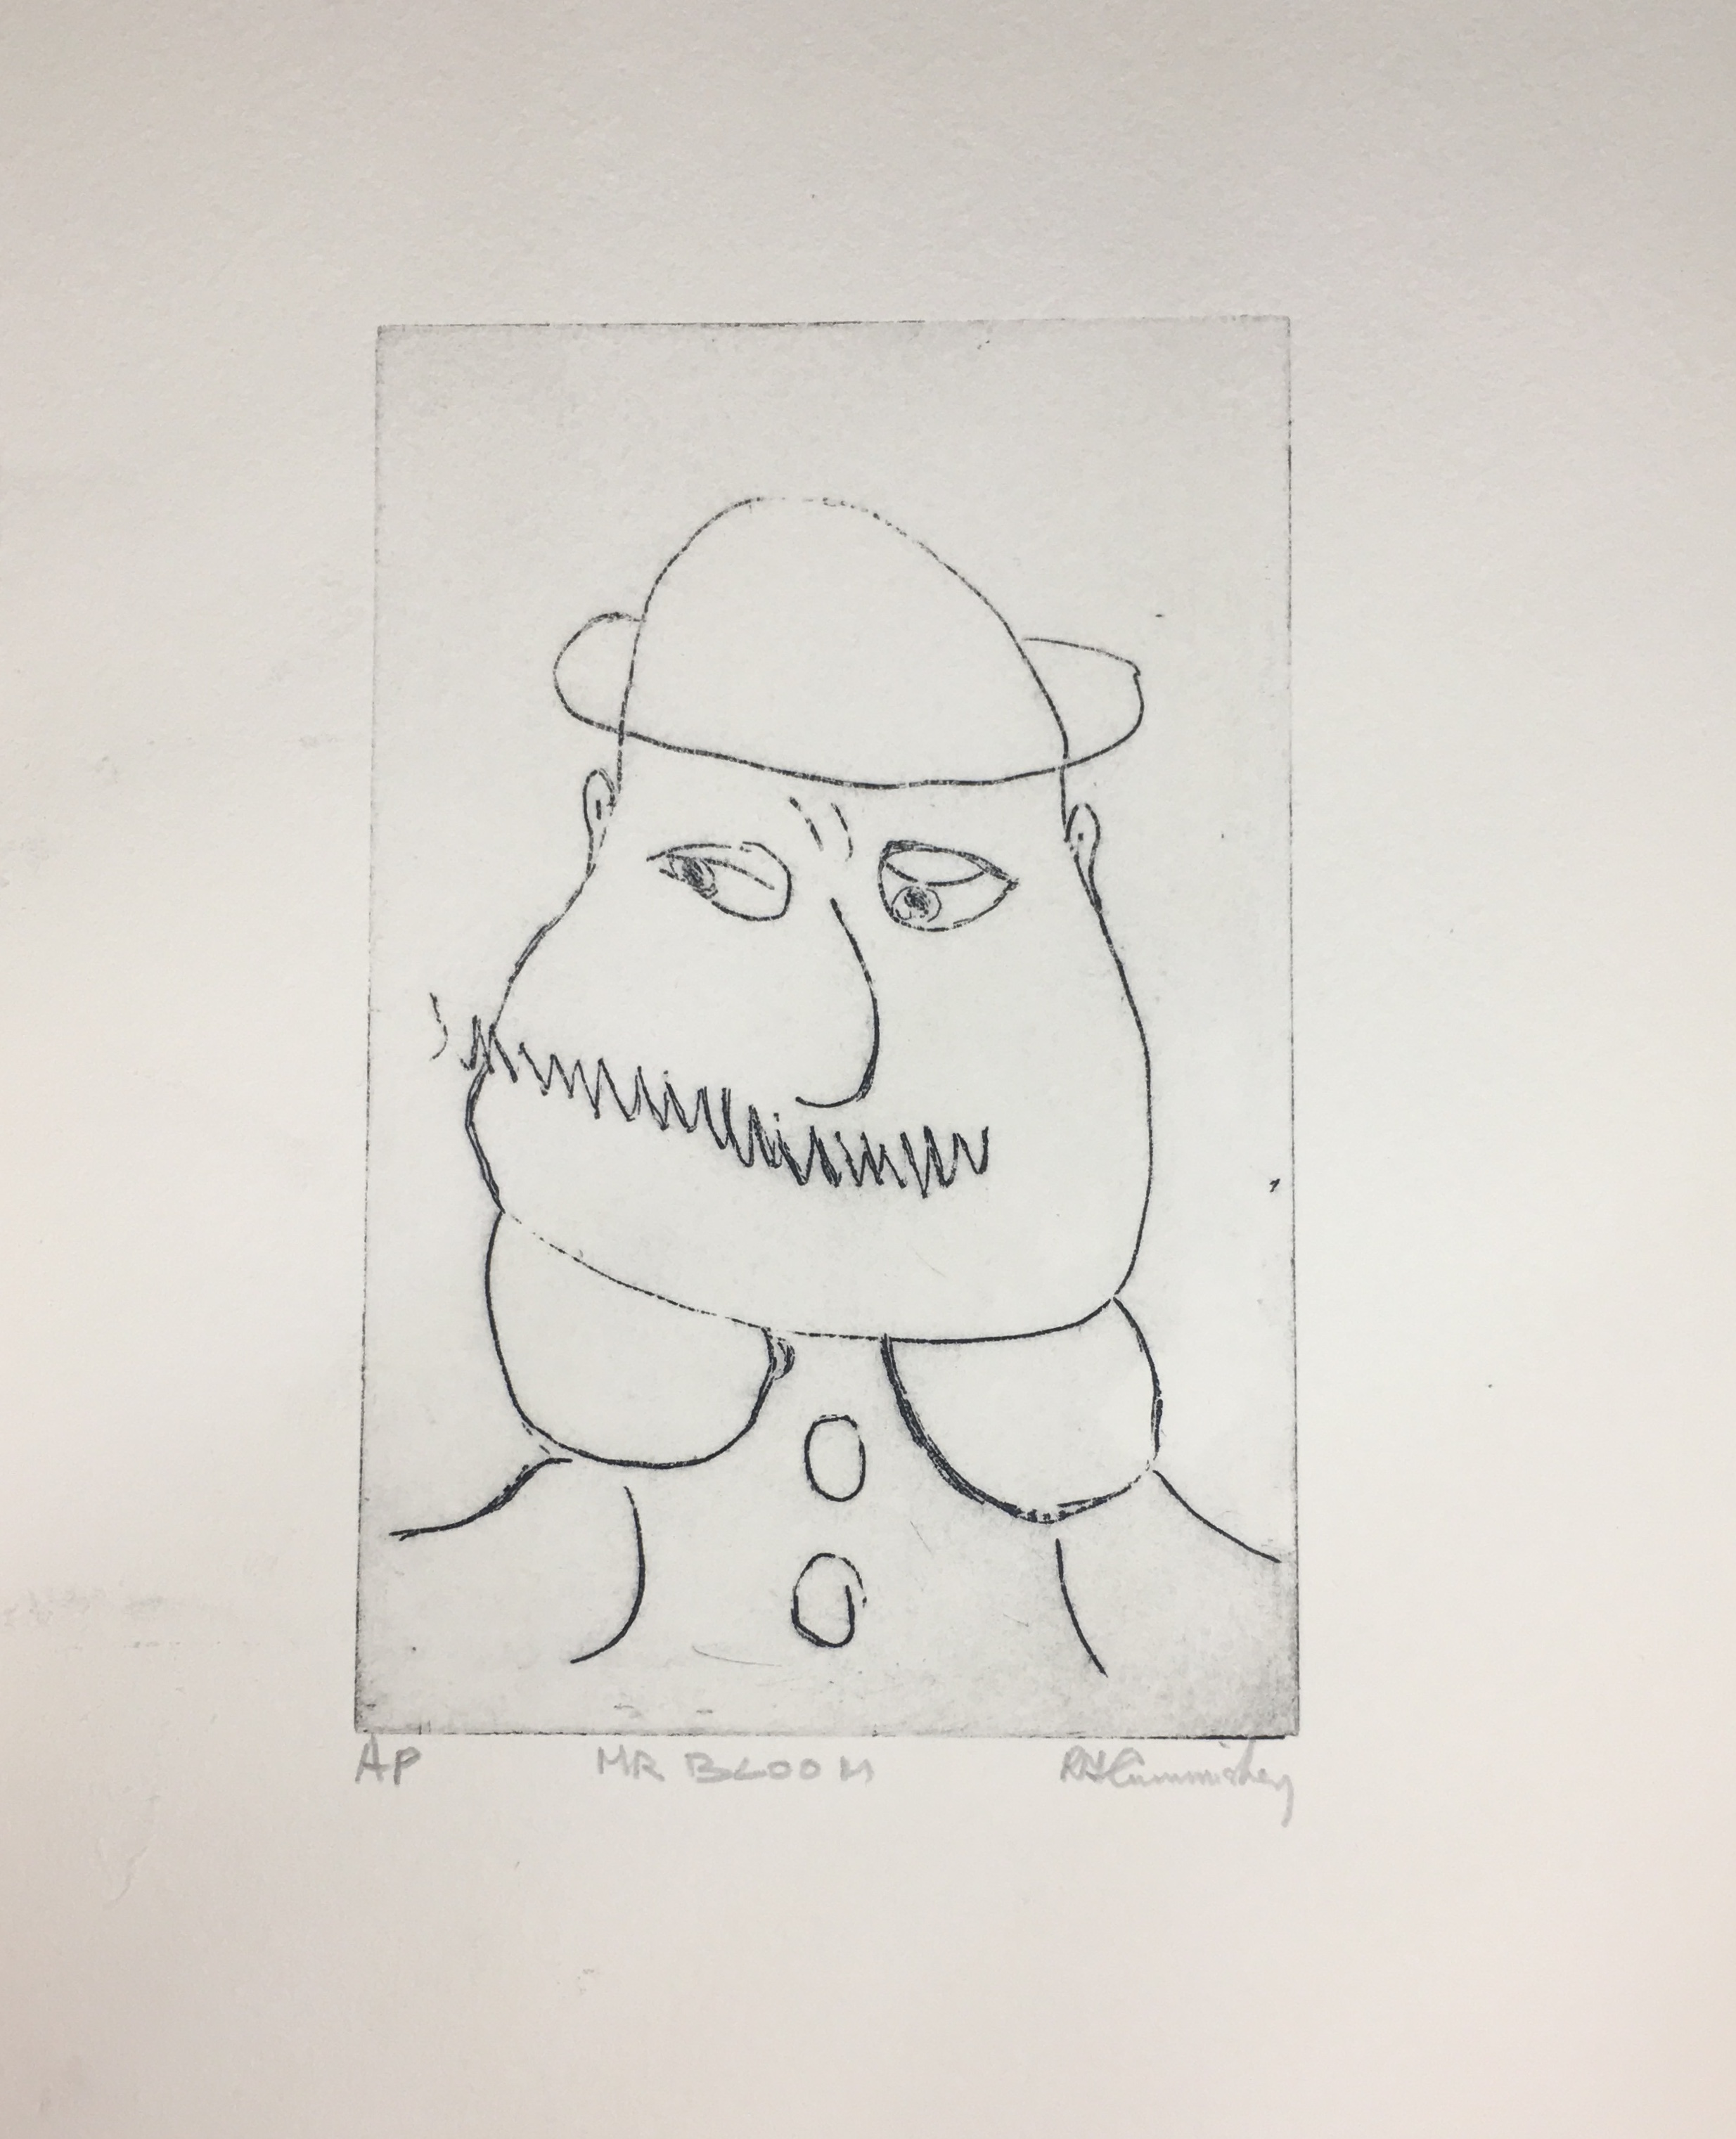 Mr Bloom, etching.